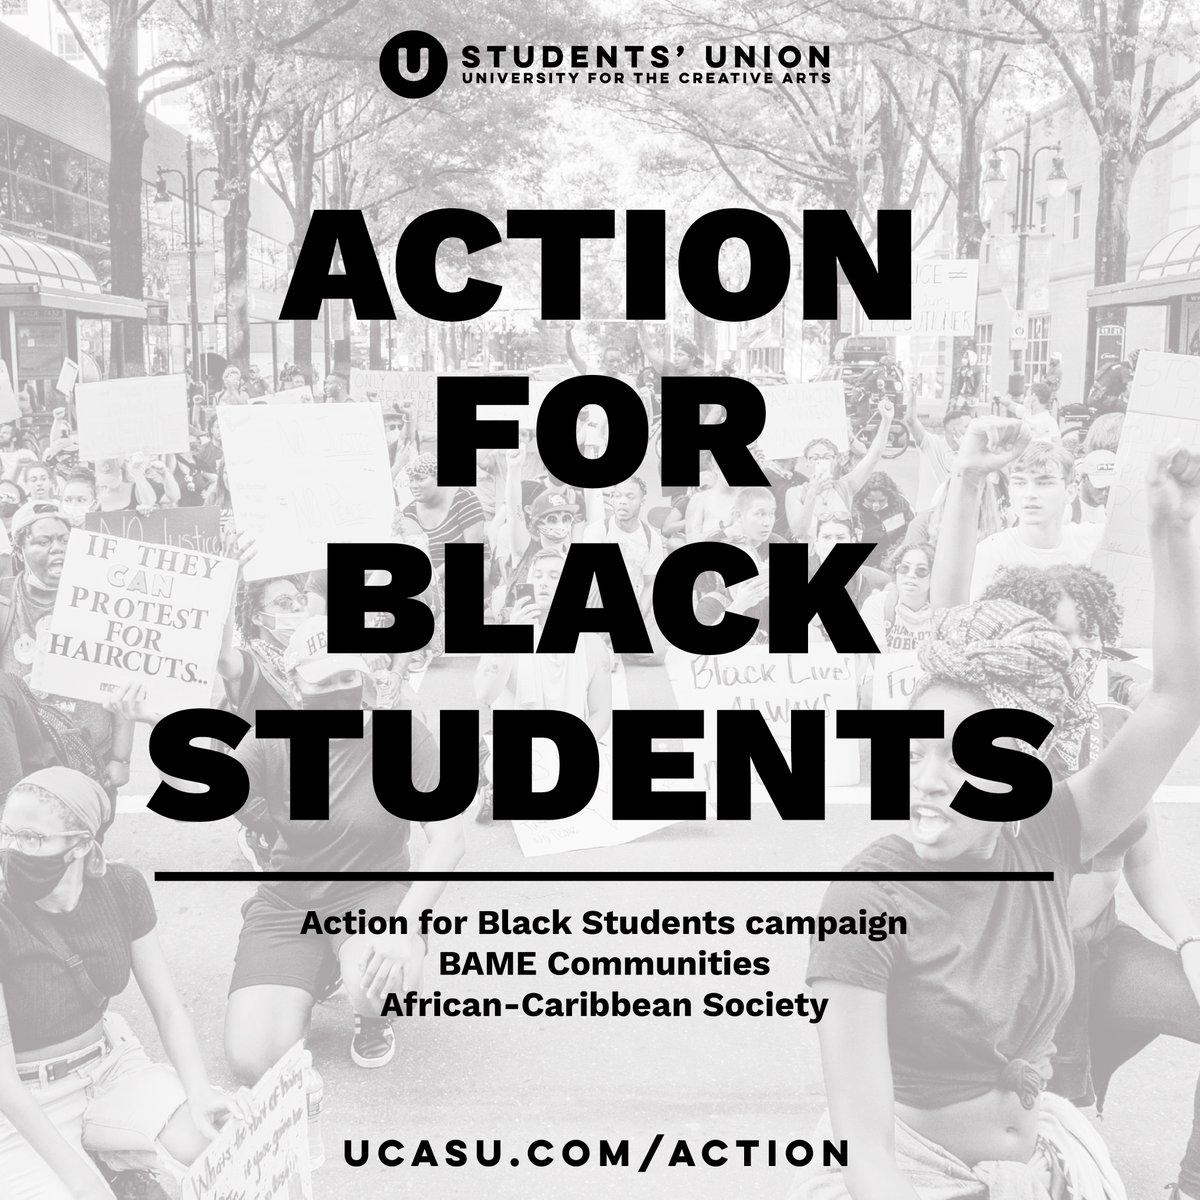 test Twitter Media - We're building a campaign to make black students' lives better. Join us 🤝 https://t.co/cYc3n8MJNJ #BlackLivesMatter https://t.co/5X4AyZD8ih